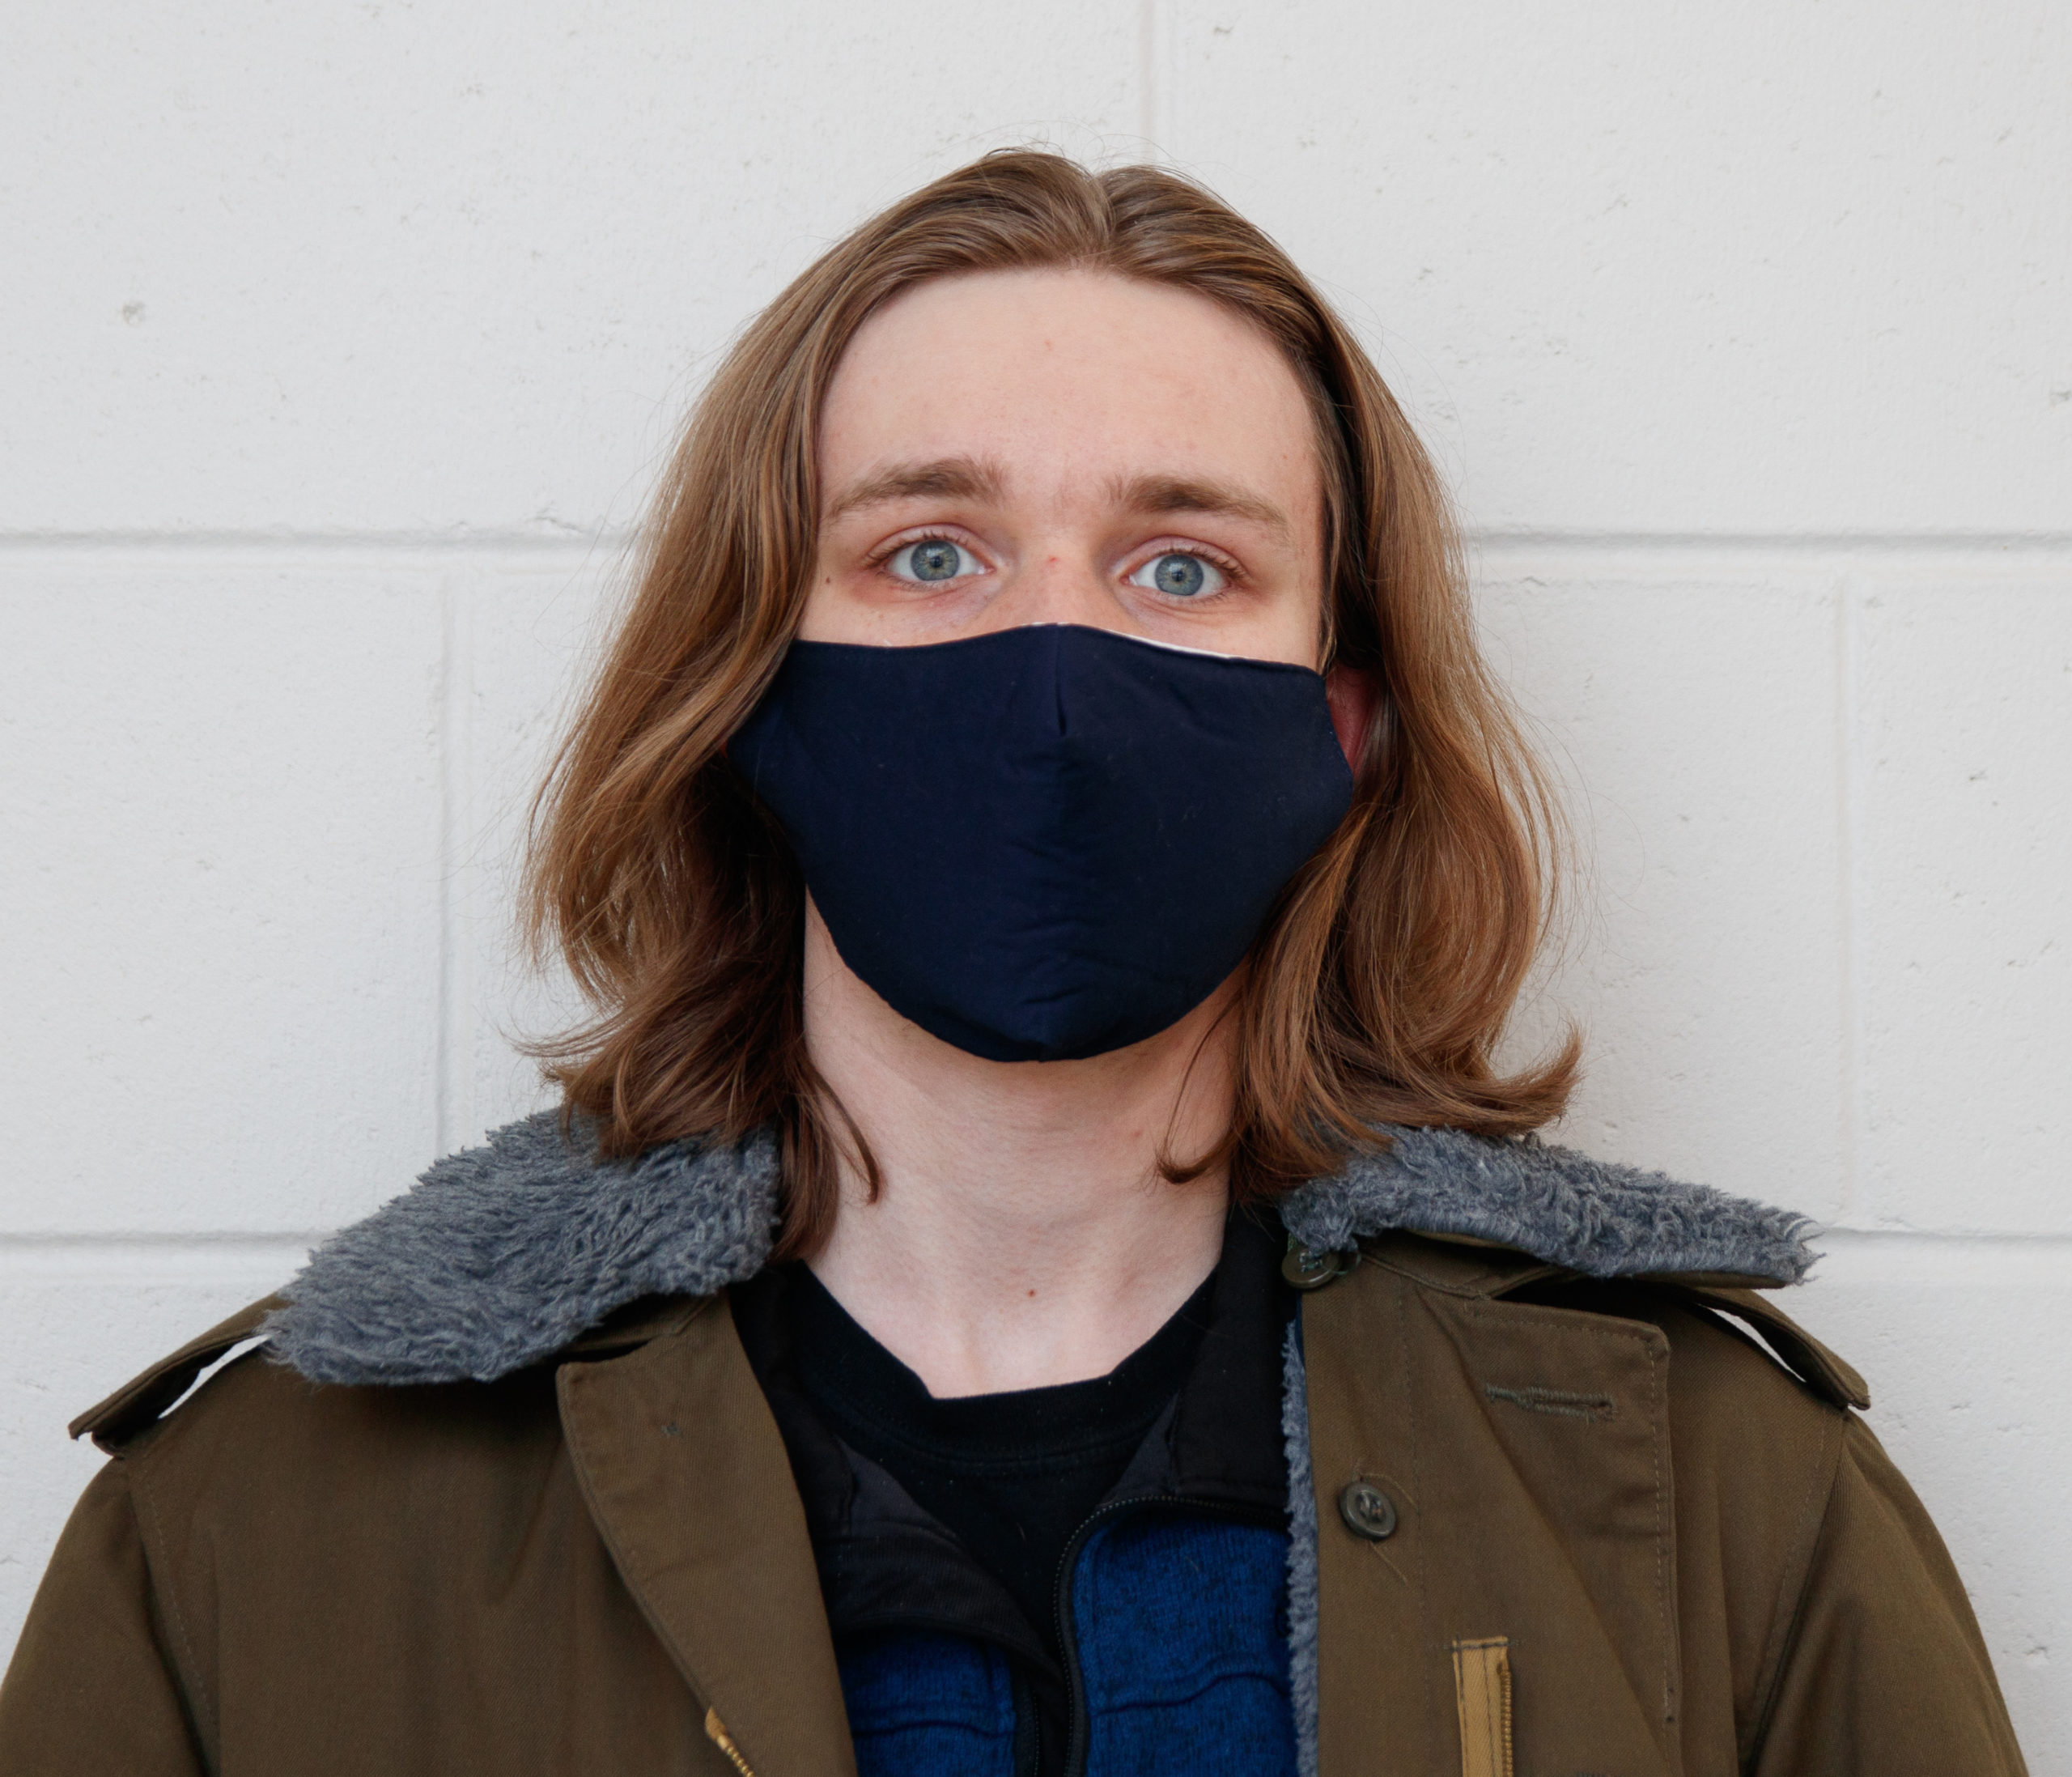 Male presenting person with shoulder length hair in mask wearing coat looks into camera on cement block background.